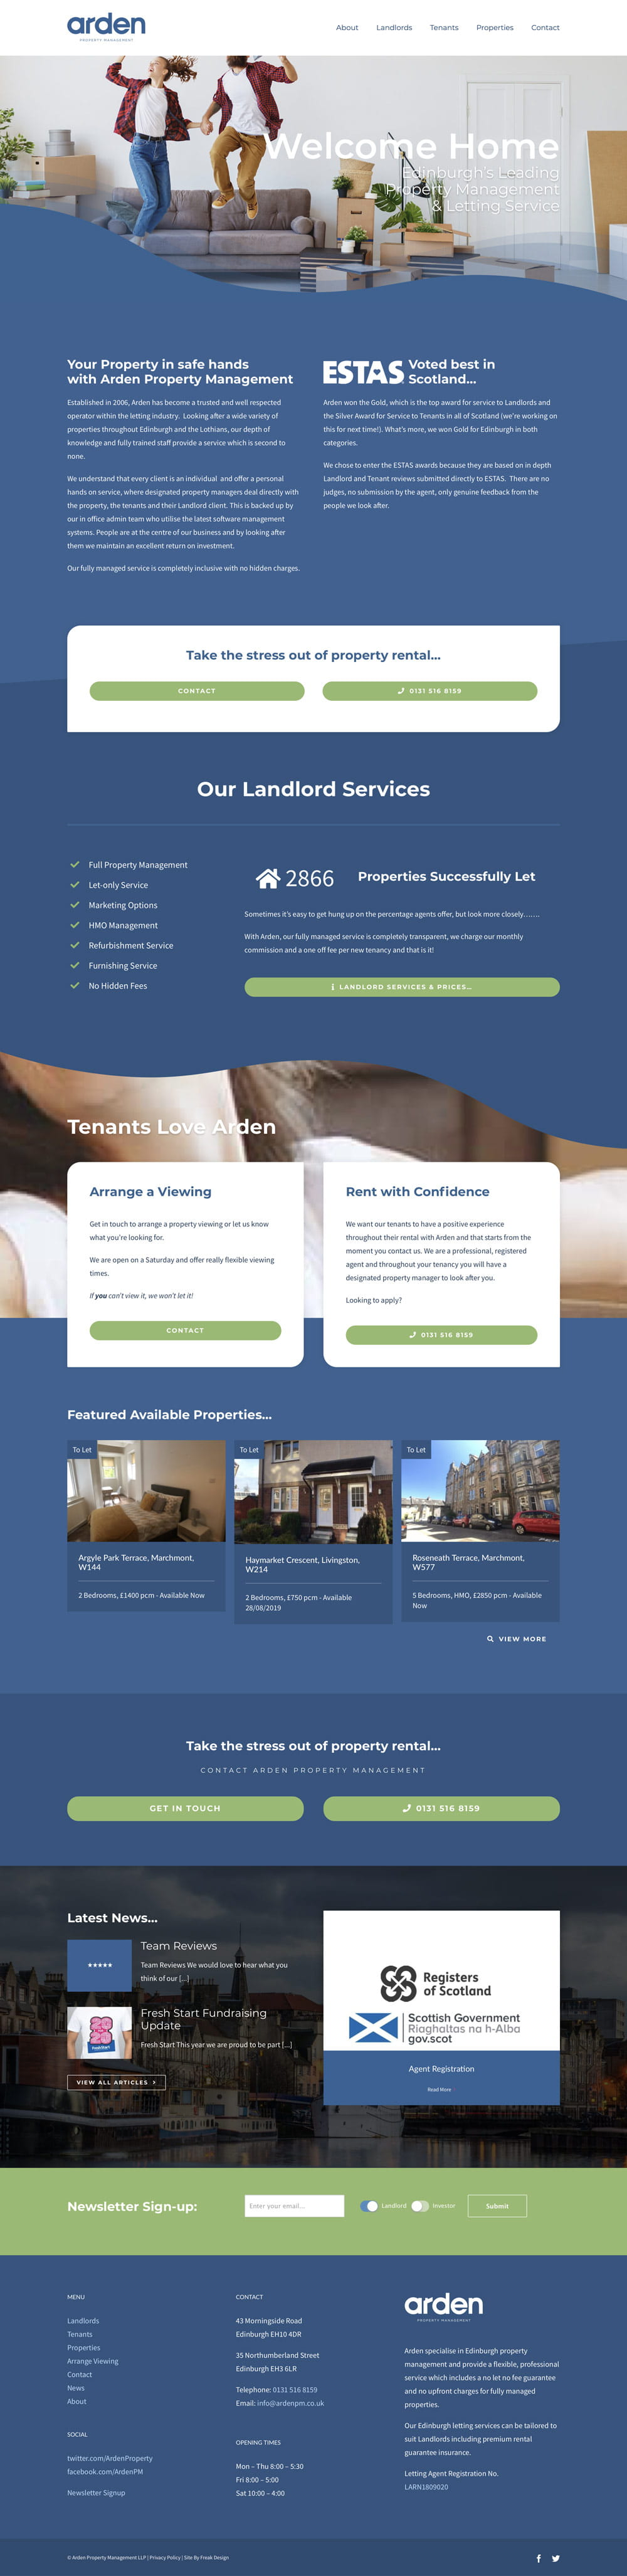 Arden property management website design by Freak